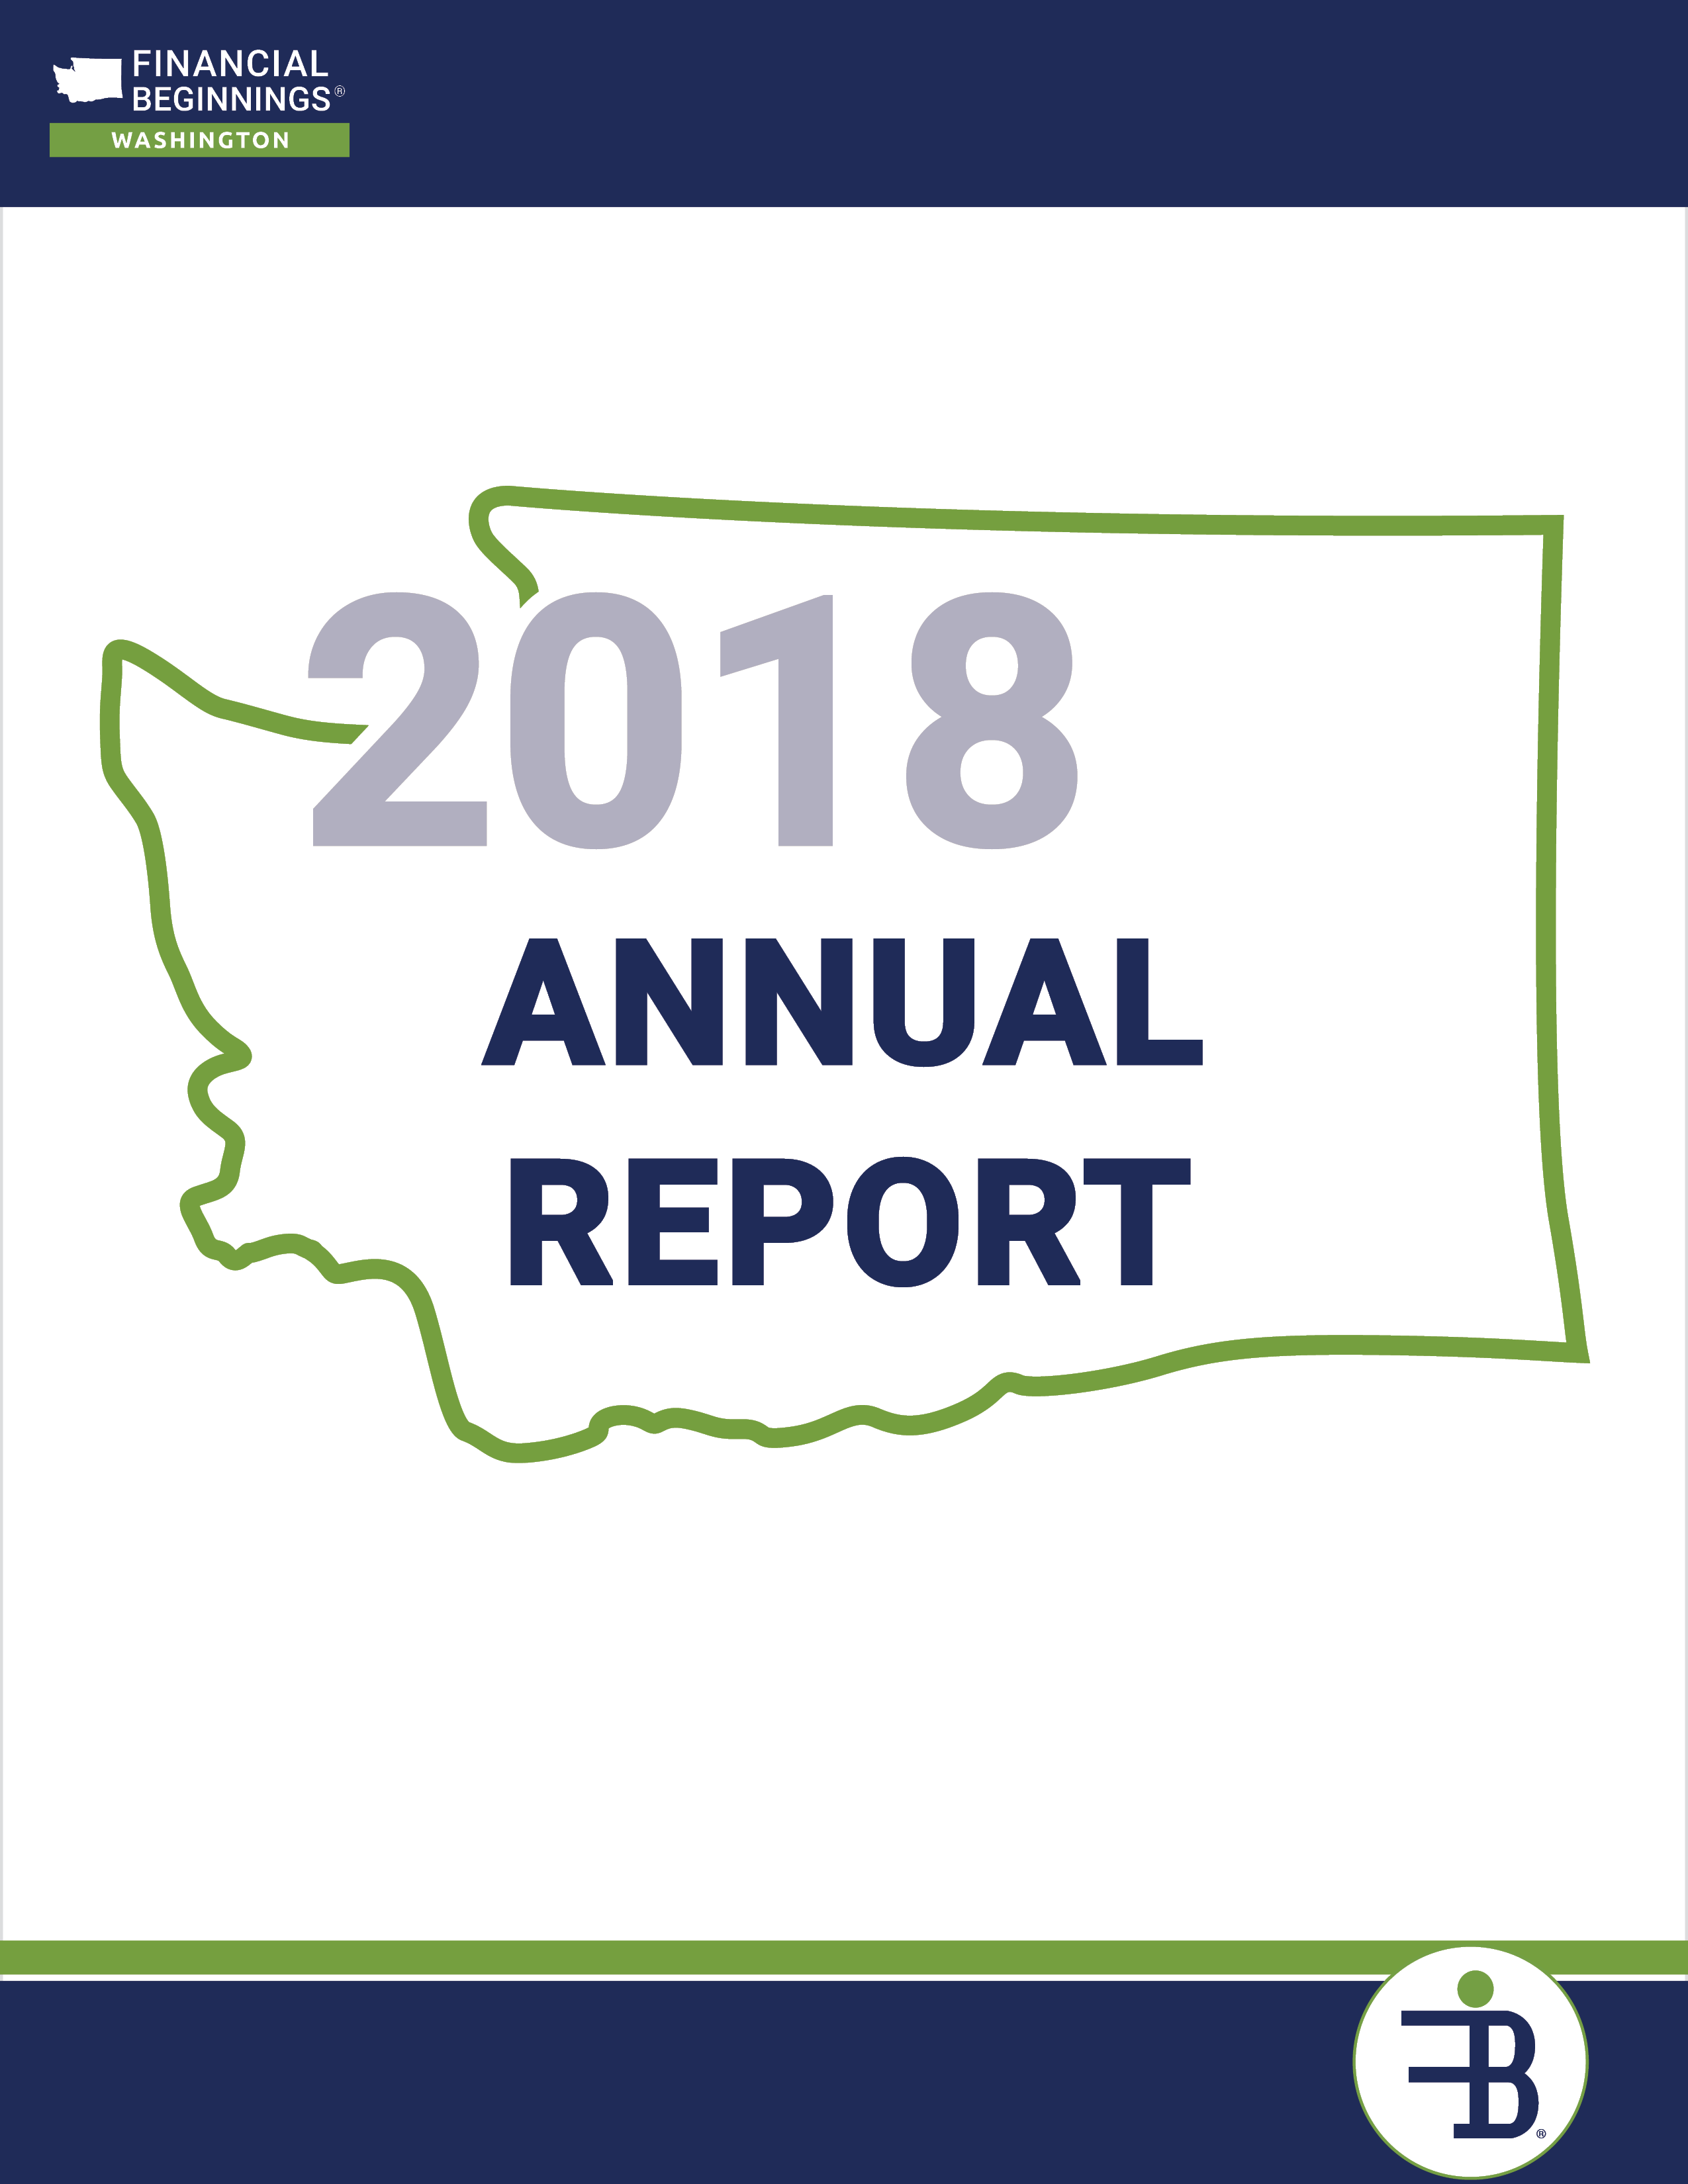 Financial Beginnings Washington 2018 Annual Report